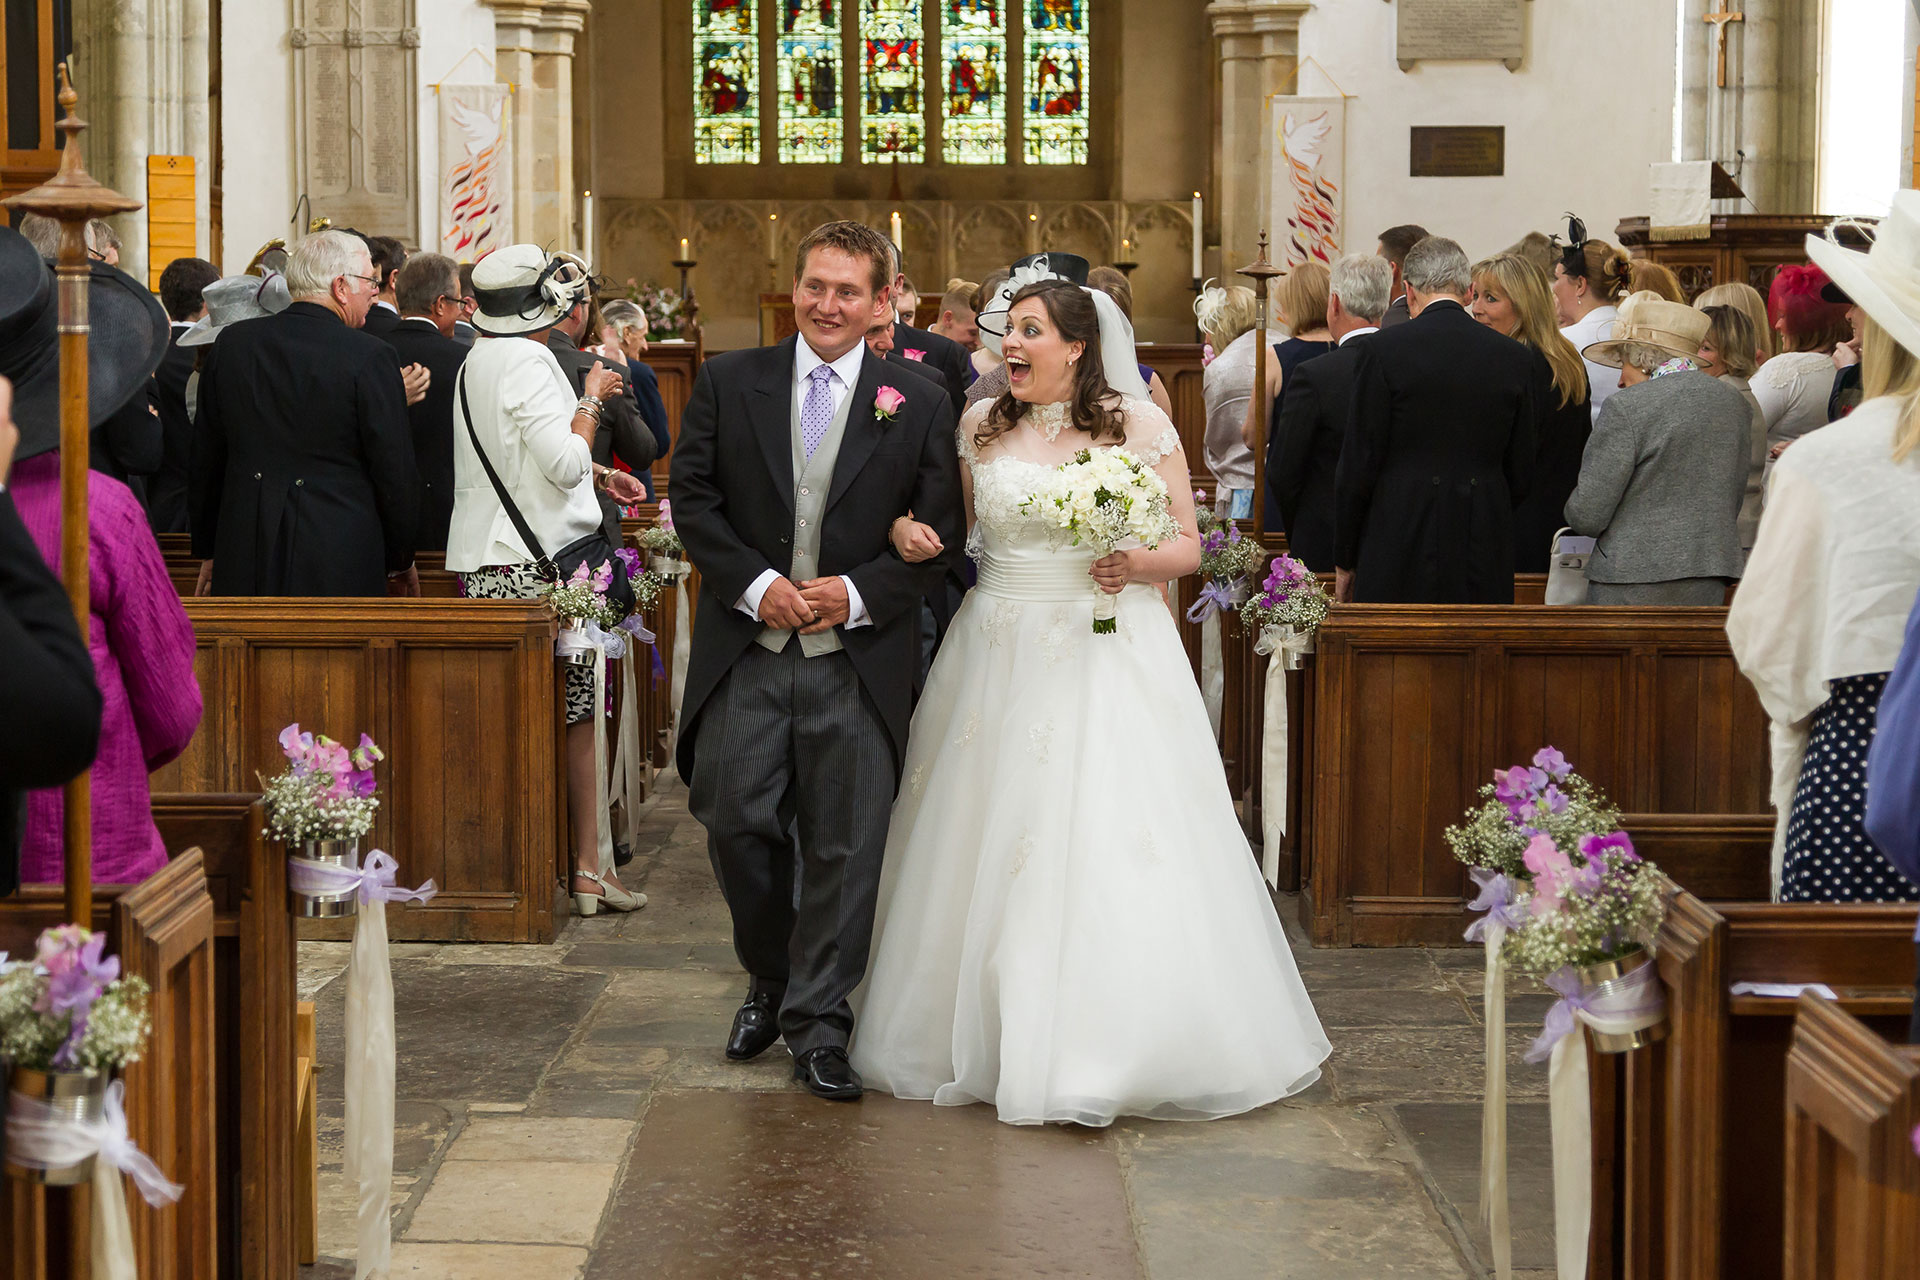 bride and groom coming down the isle in a church